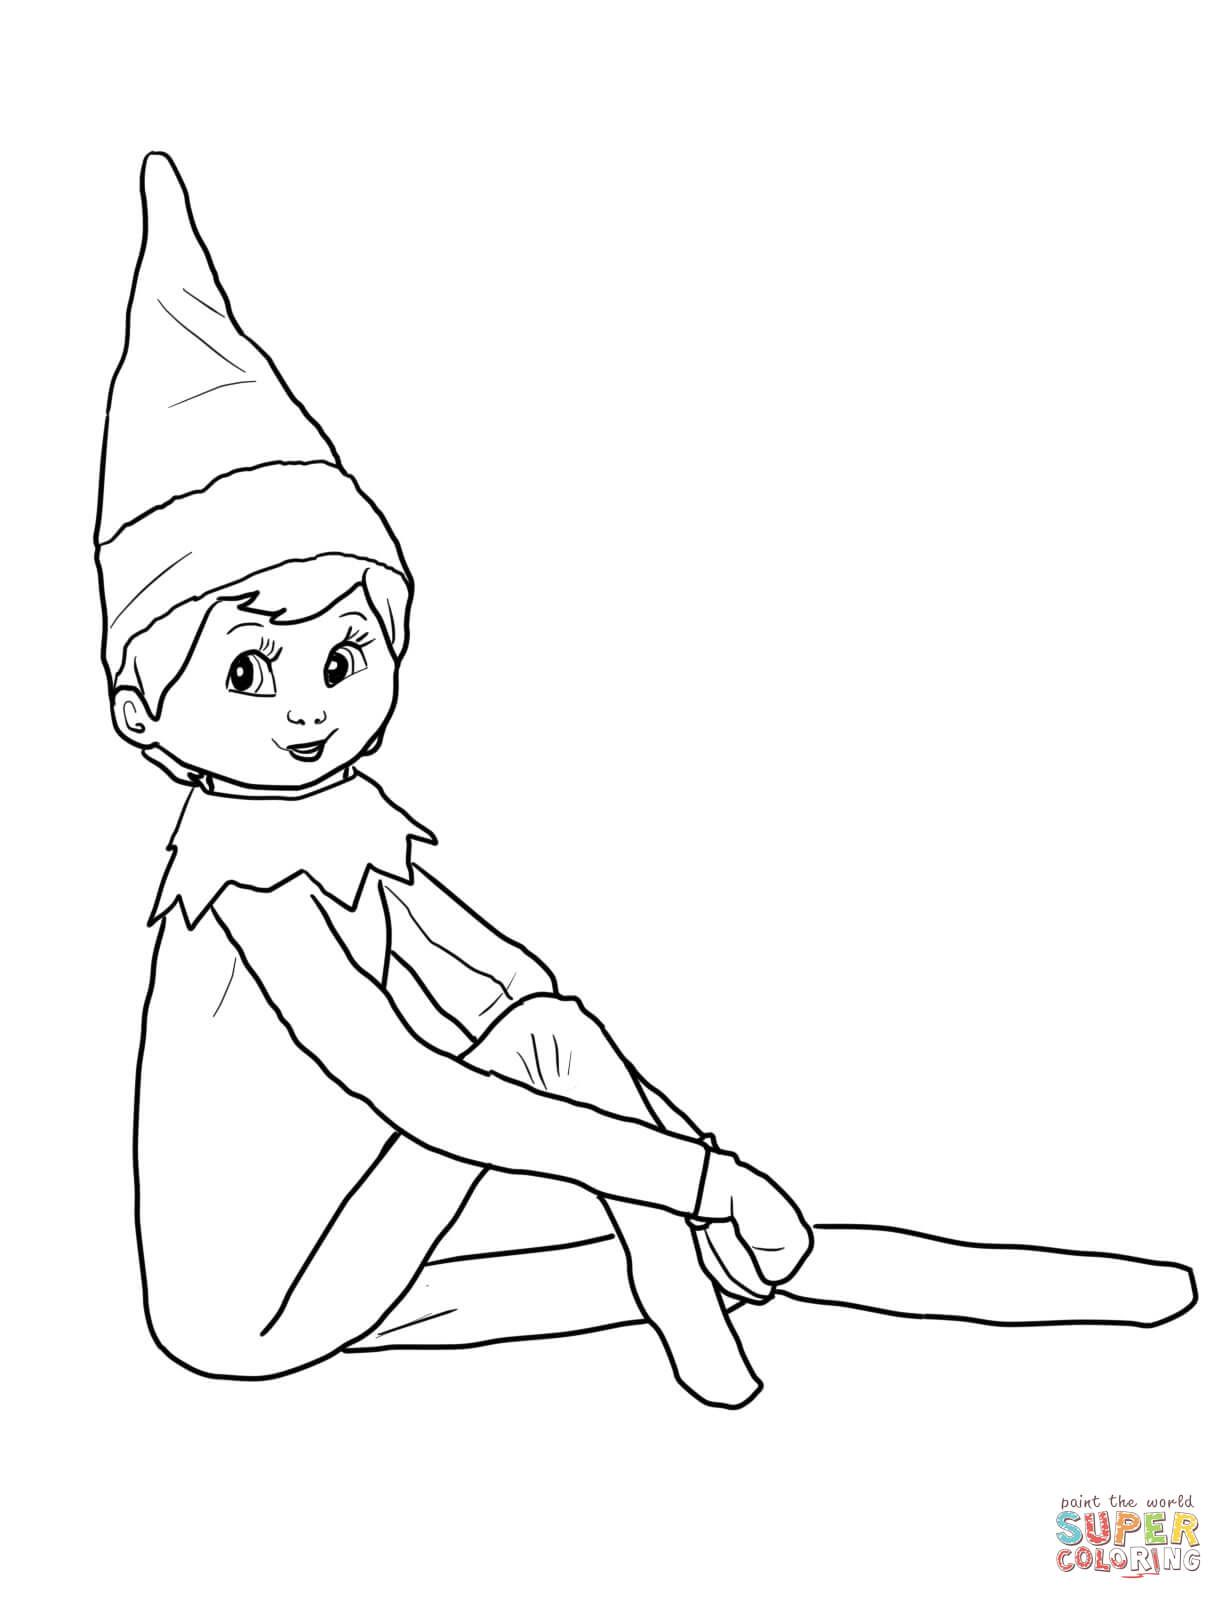 1224x1600 Elf On The Shelf Coloring Page From Elf On The Shelf Category